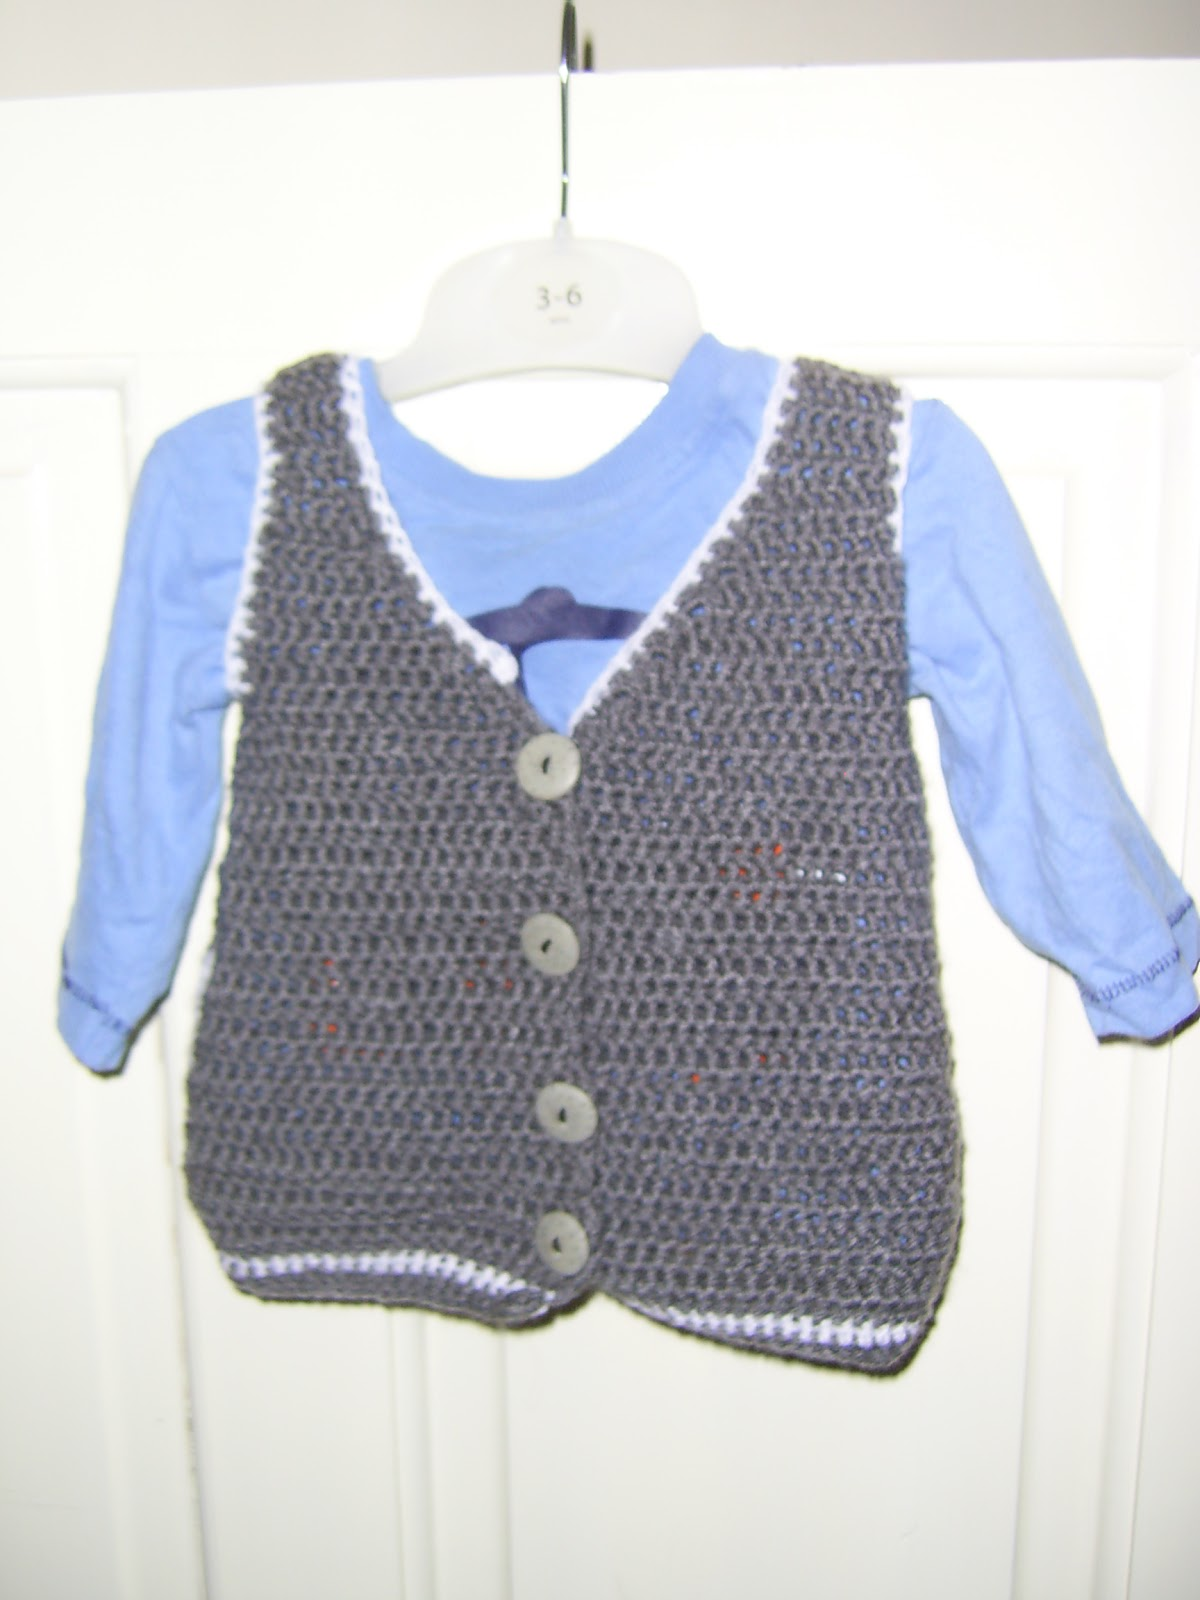 Crochet Patterns For Childrens Vests : Mauv is Crafty: Little boys Crochet Waistcoat